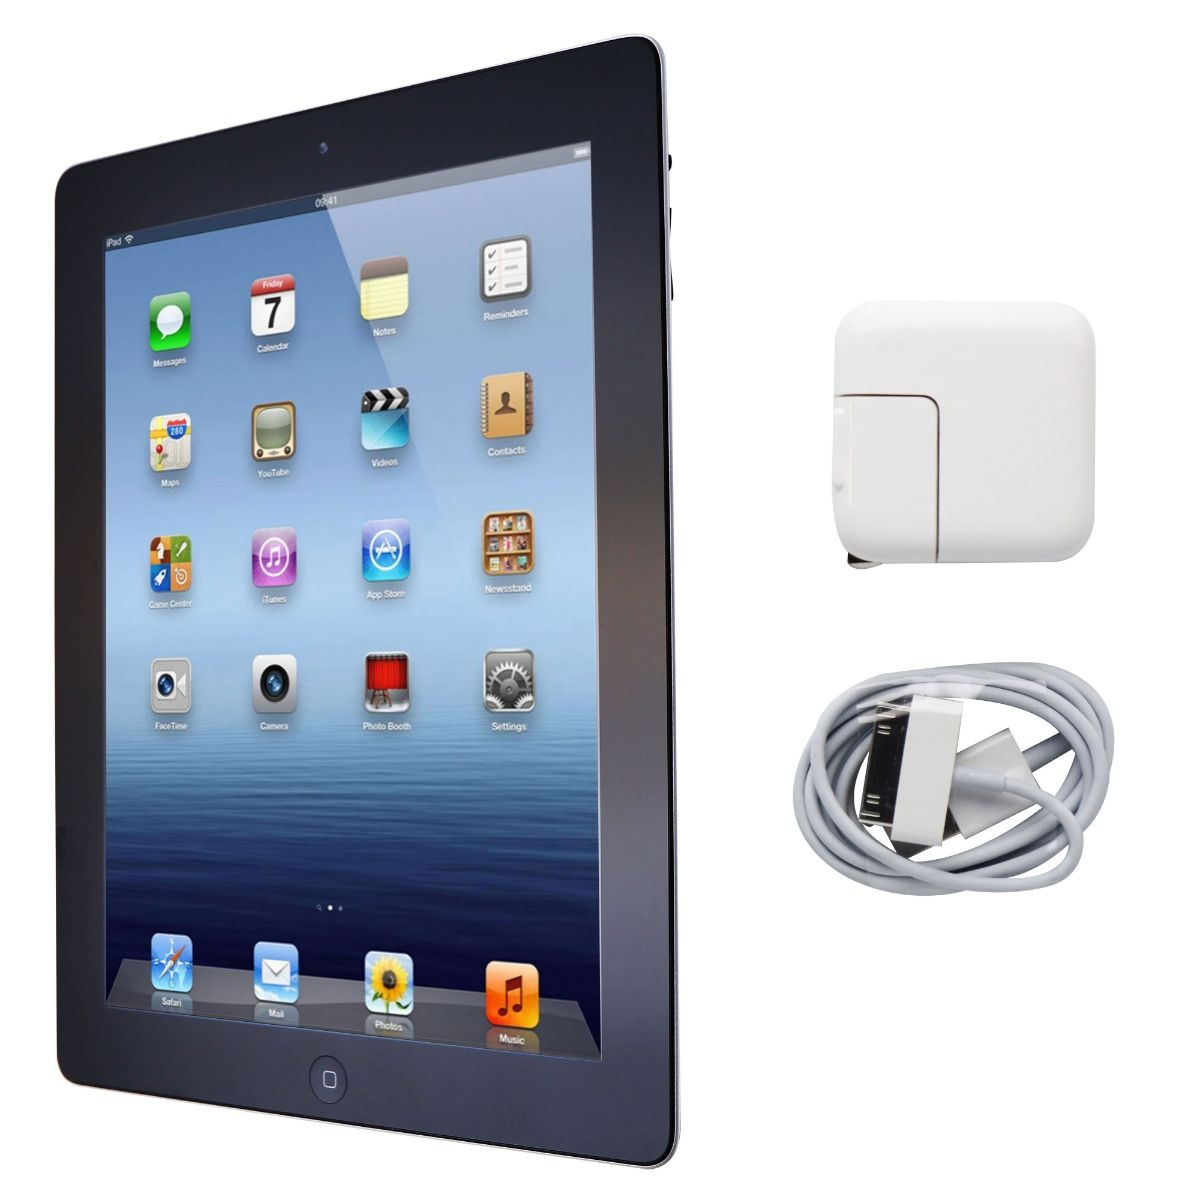 Apple iPad 9.7-inch (3rd Generation) Tablet A1416 (Wi-Fi ONLY) - 64GB / Black